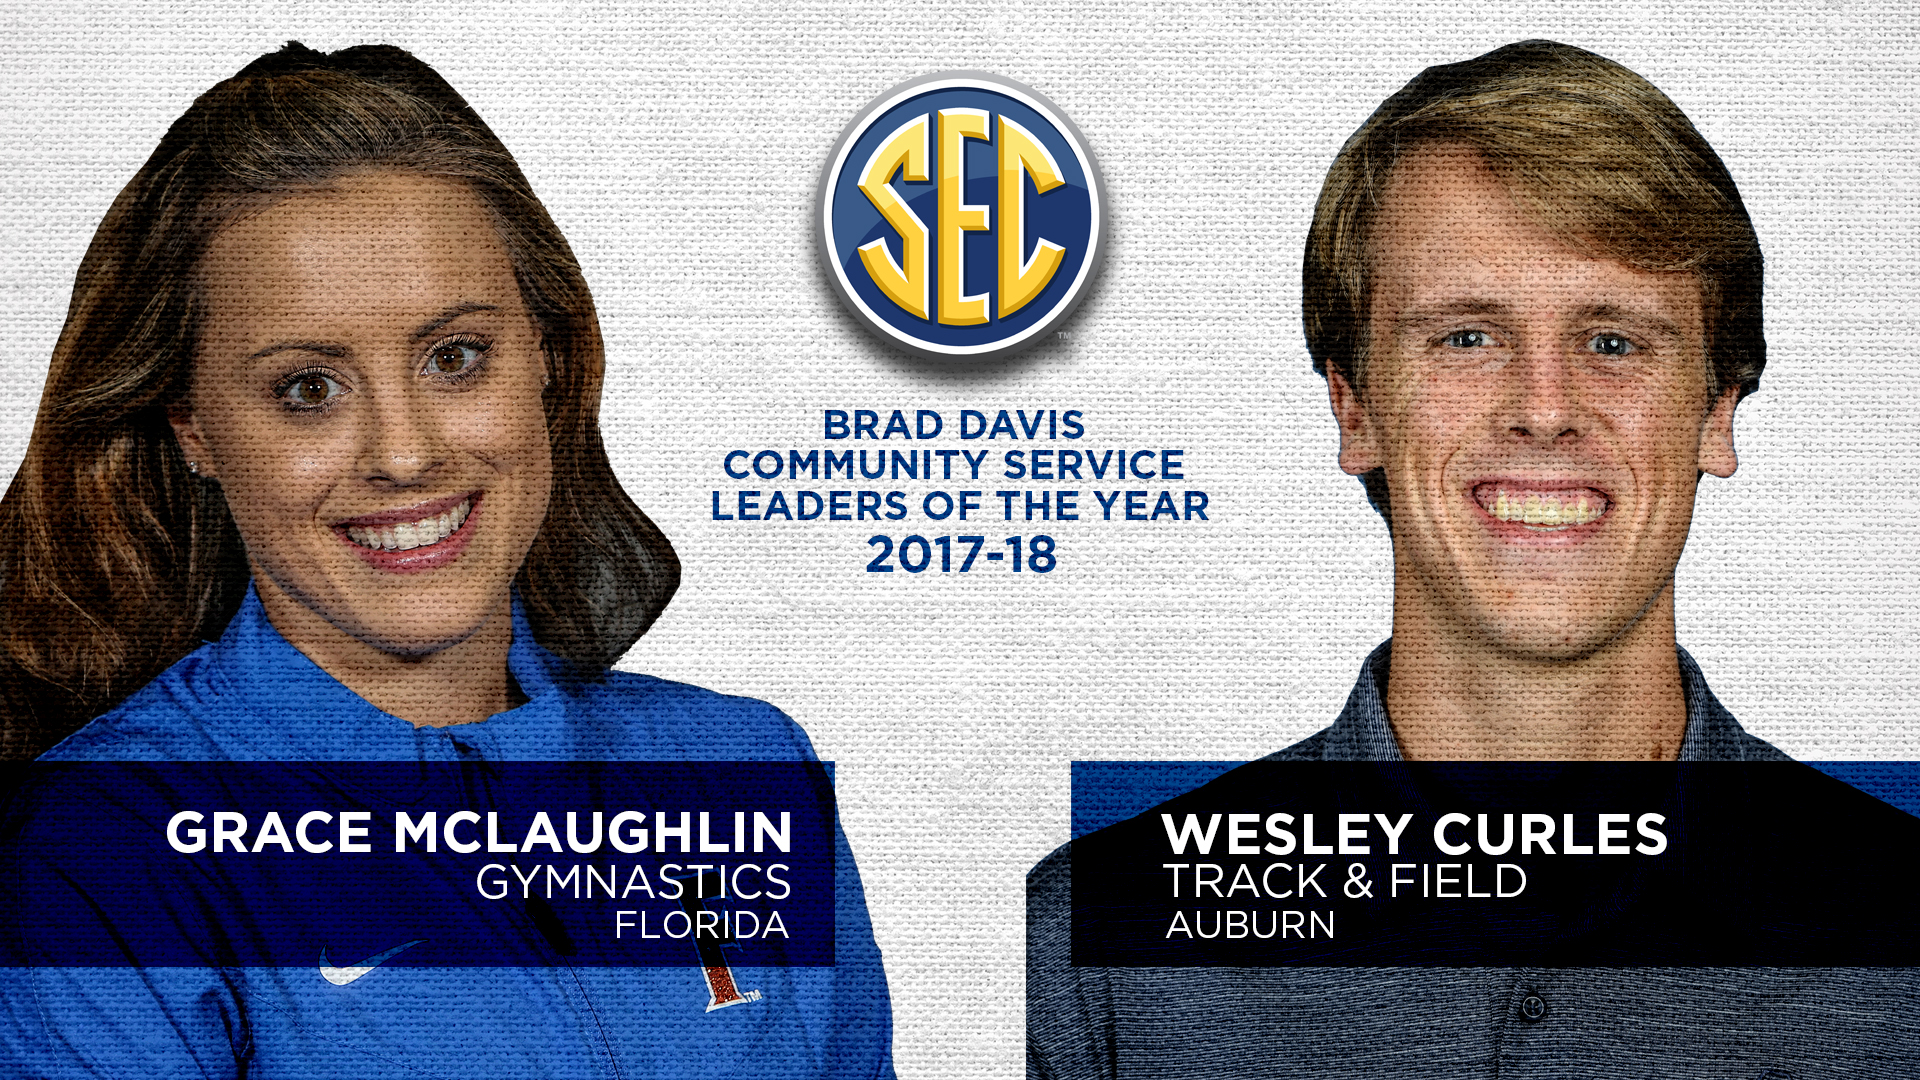 Florida's McLaughlin, Auburn's Curles Named Brad Davis SEC Community Service Award Winners